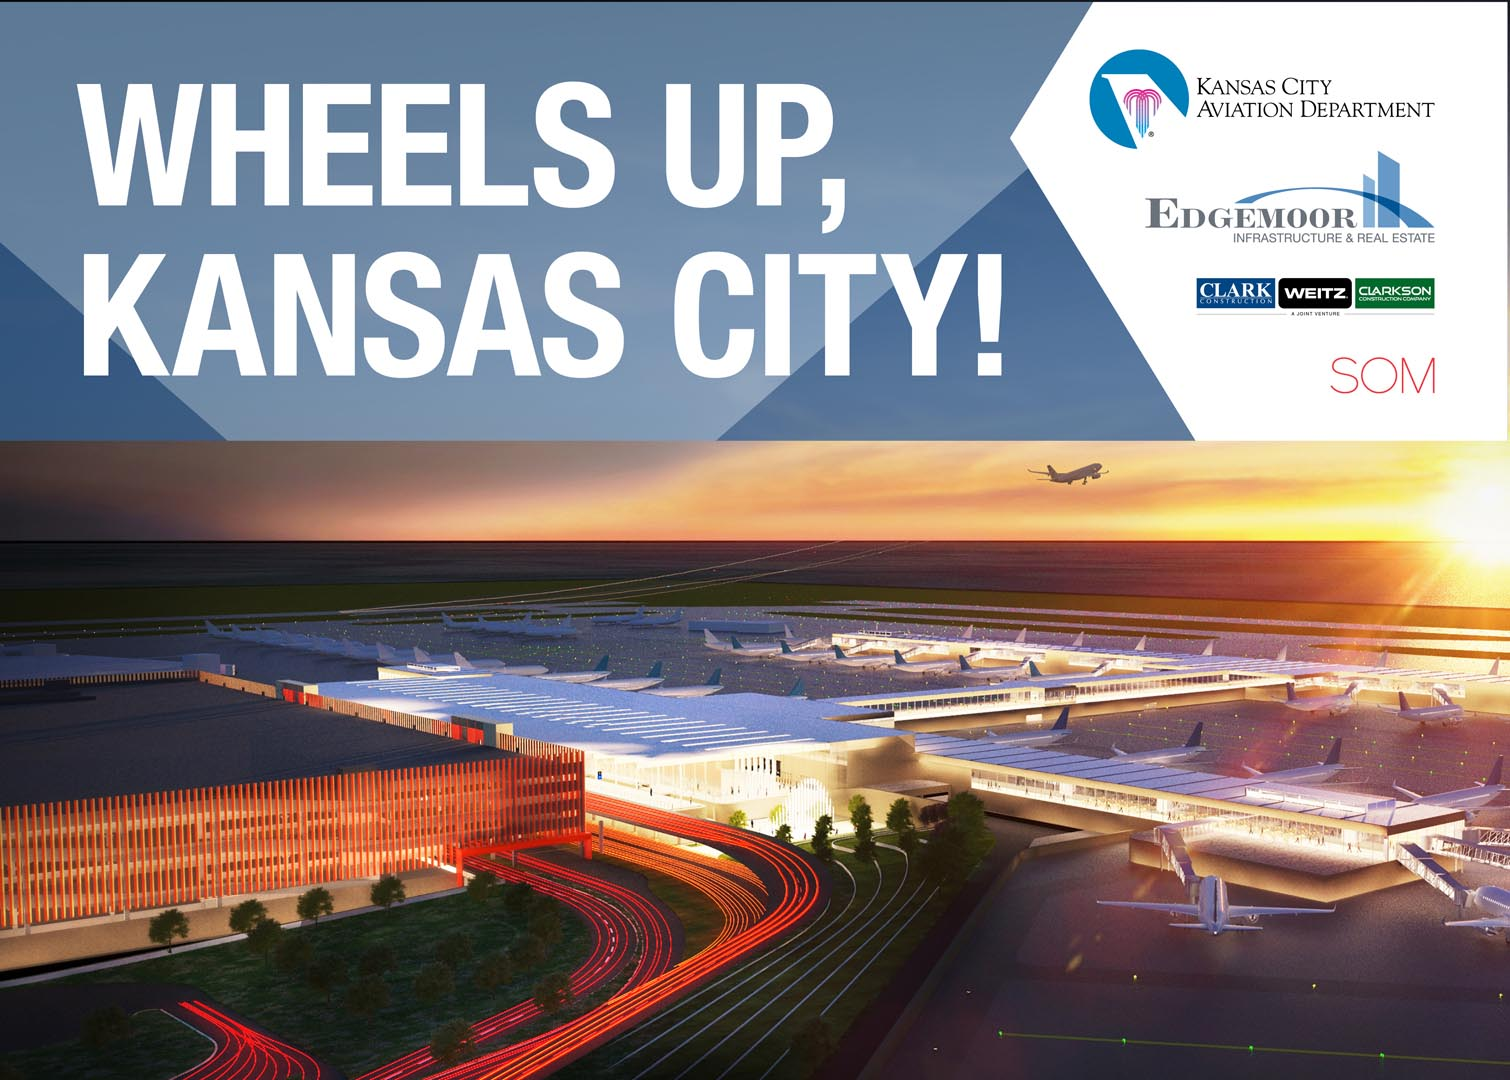 On the heels of the City Council's 11-1 vote in support of moving forward with the $1.5 billion project, the Kansas City Aviation Department and Edgemoor are pleased to announce plans for a groundbreaking celebration for the project later this month.